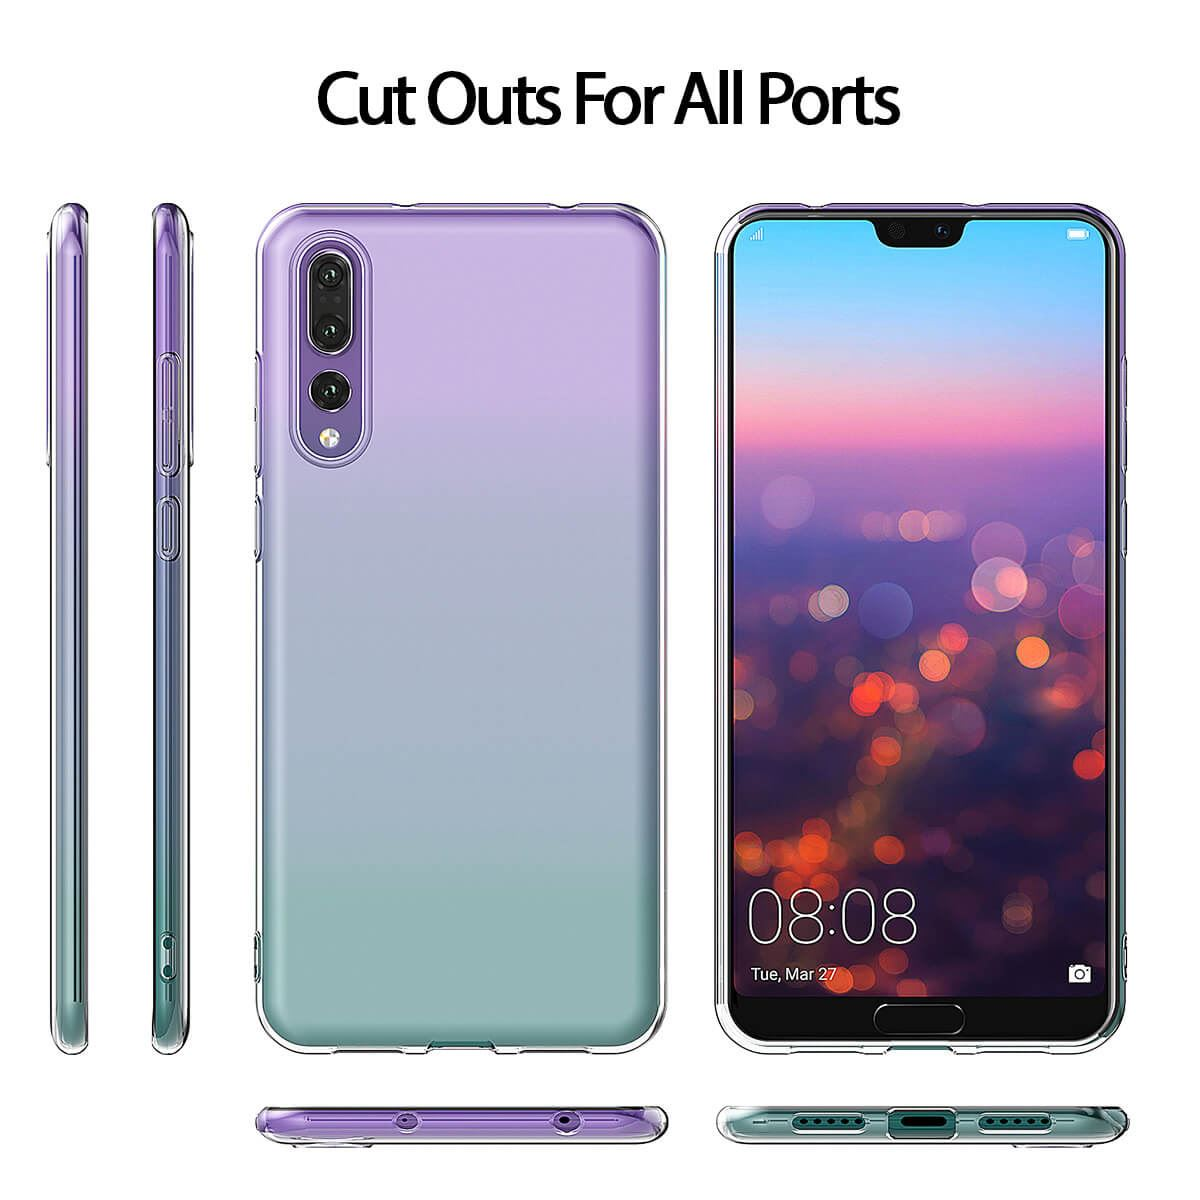 Shockproof-Silicone-Protective-Clear-Gel-Cover-Case-For-Huawei-P20-Pro-P-Smart thumbnail 34